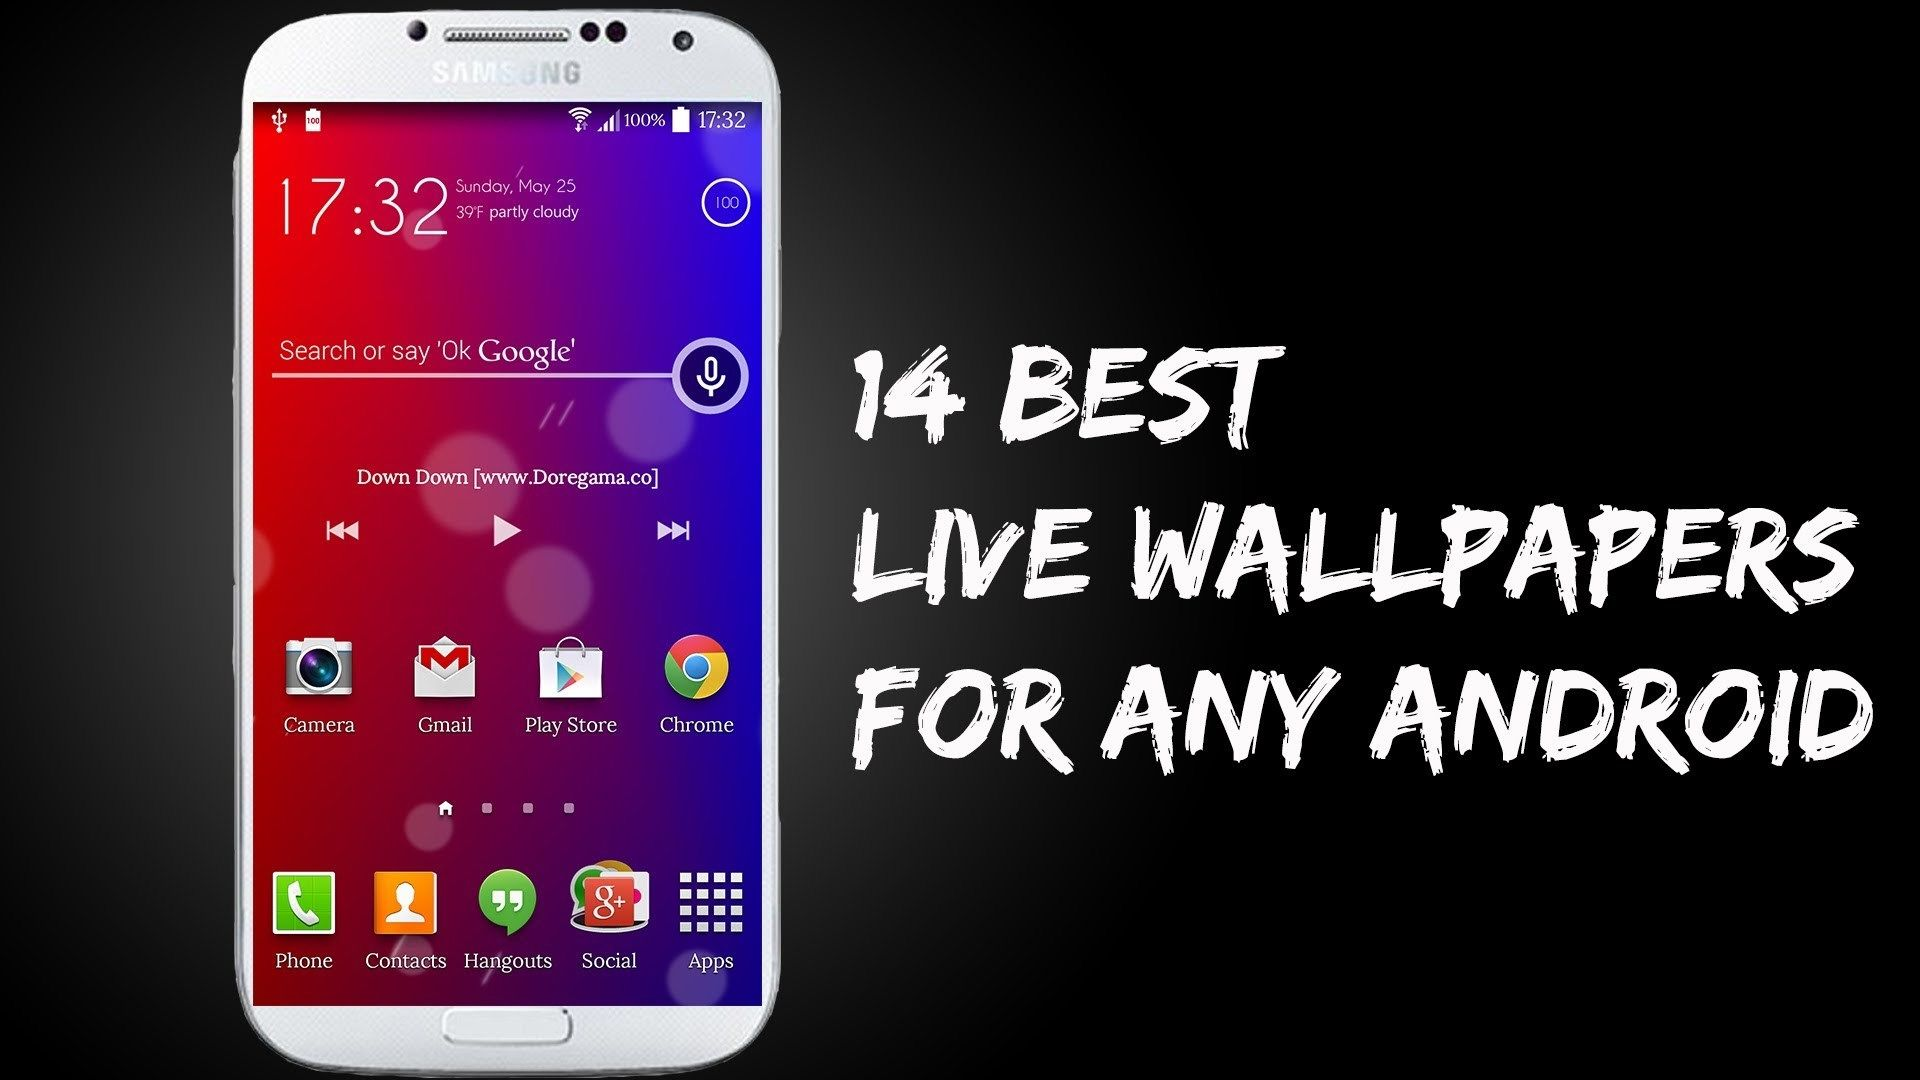 14 best live wallpapers for any android samsung galaxy